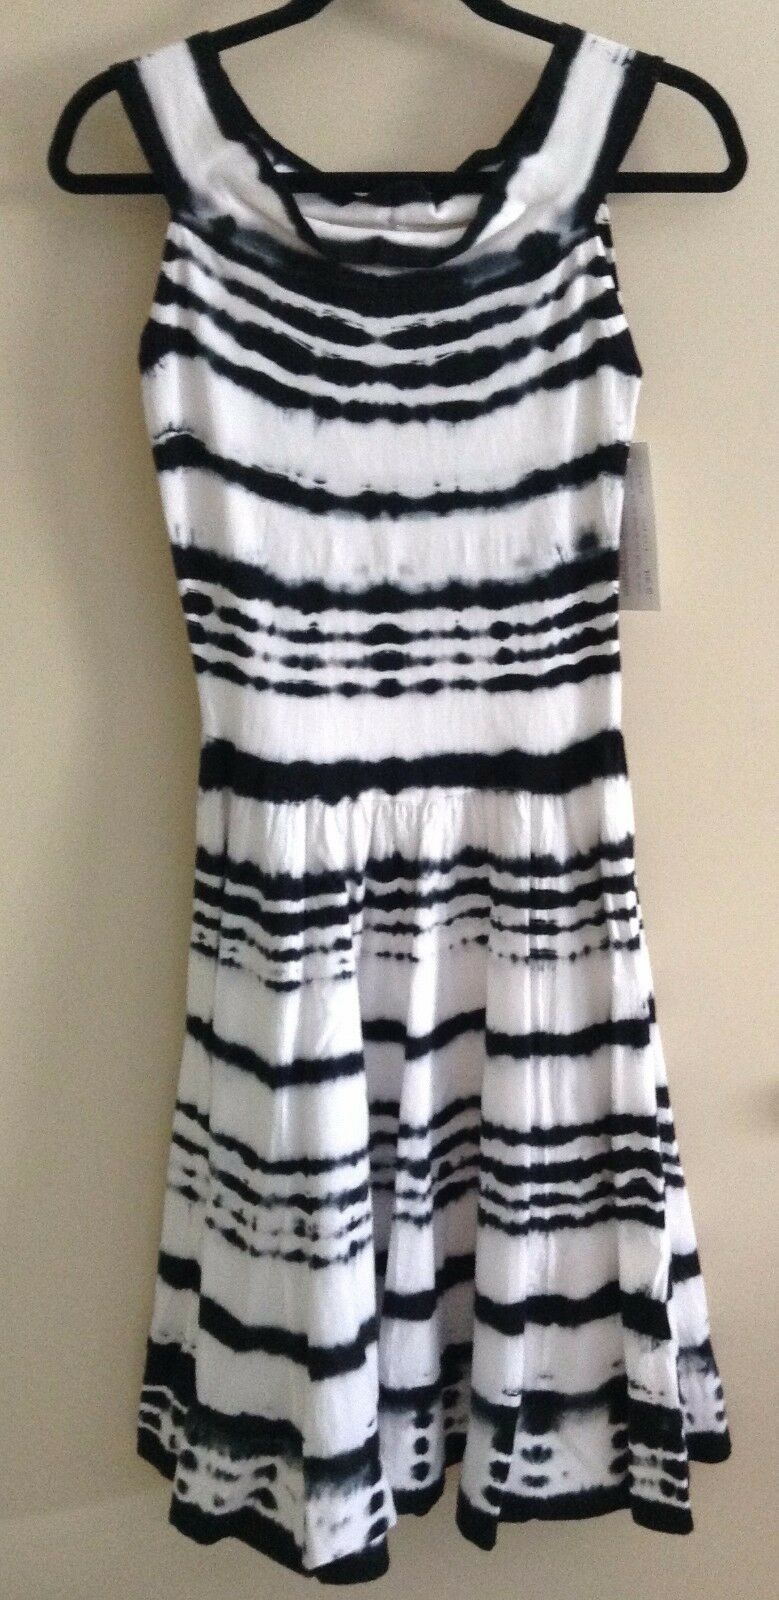 Luna Luz Tie Dye Tank Dress Fitted Bodice Style 43M 43M 43M NEW with Tags  5cd794